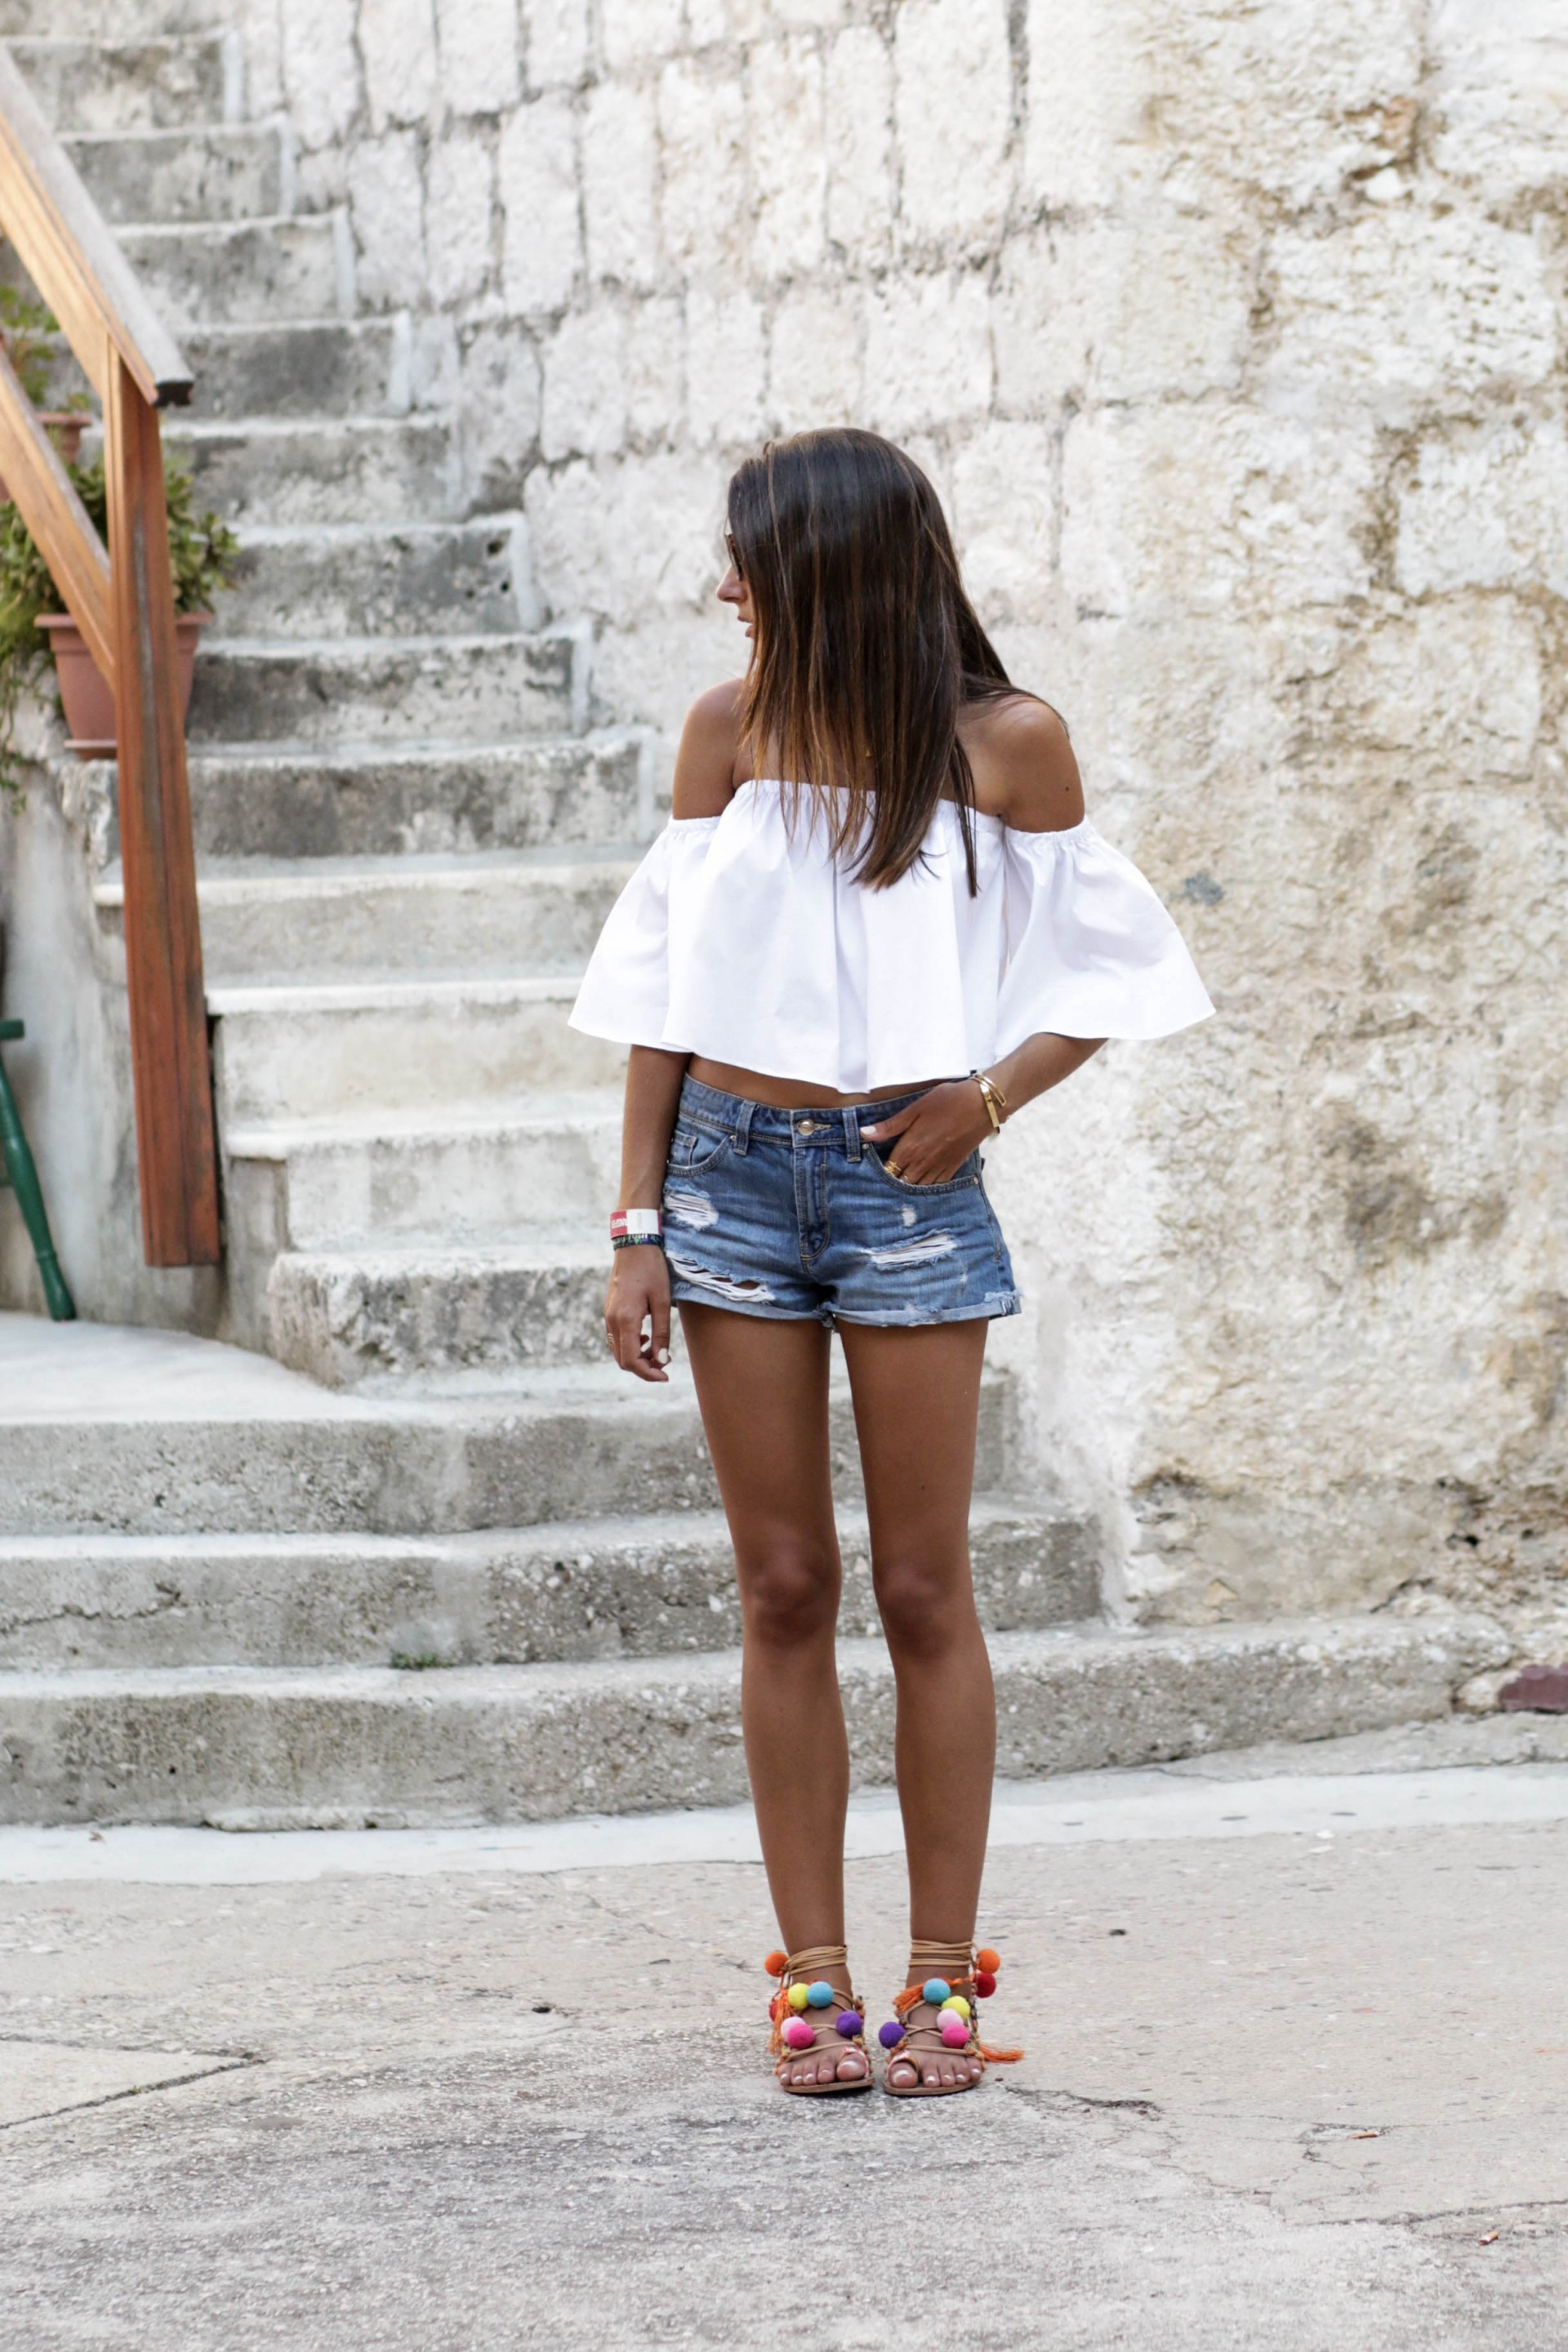 Federica L. is killing it in this gorgeous off the shoulder top from H&M, paired casually with denim cut offs and a pair of super cute bobble sandals which serve to inject some vibrant colour into the look. We love this summer style! Top: H&M, Sandals: Stradivarius.